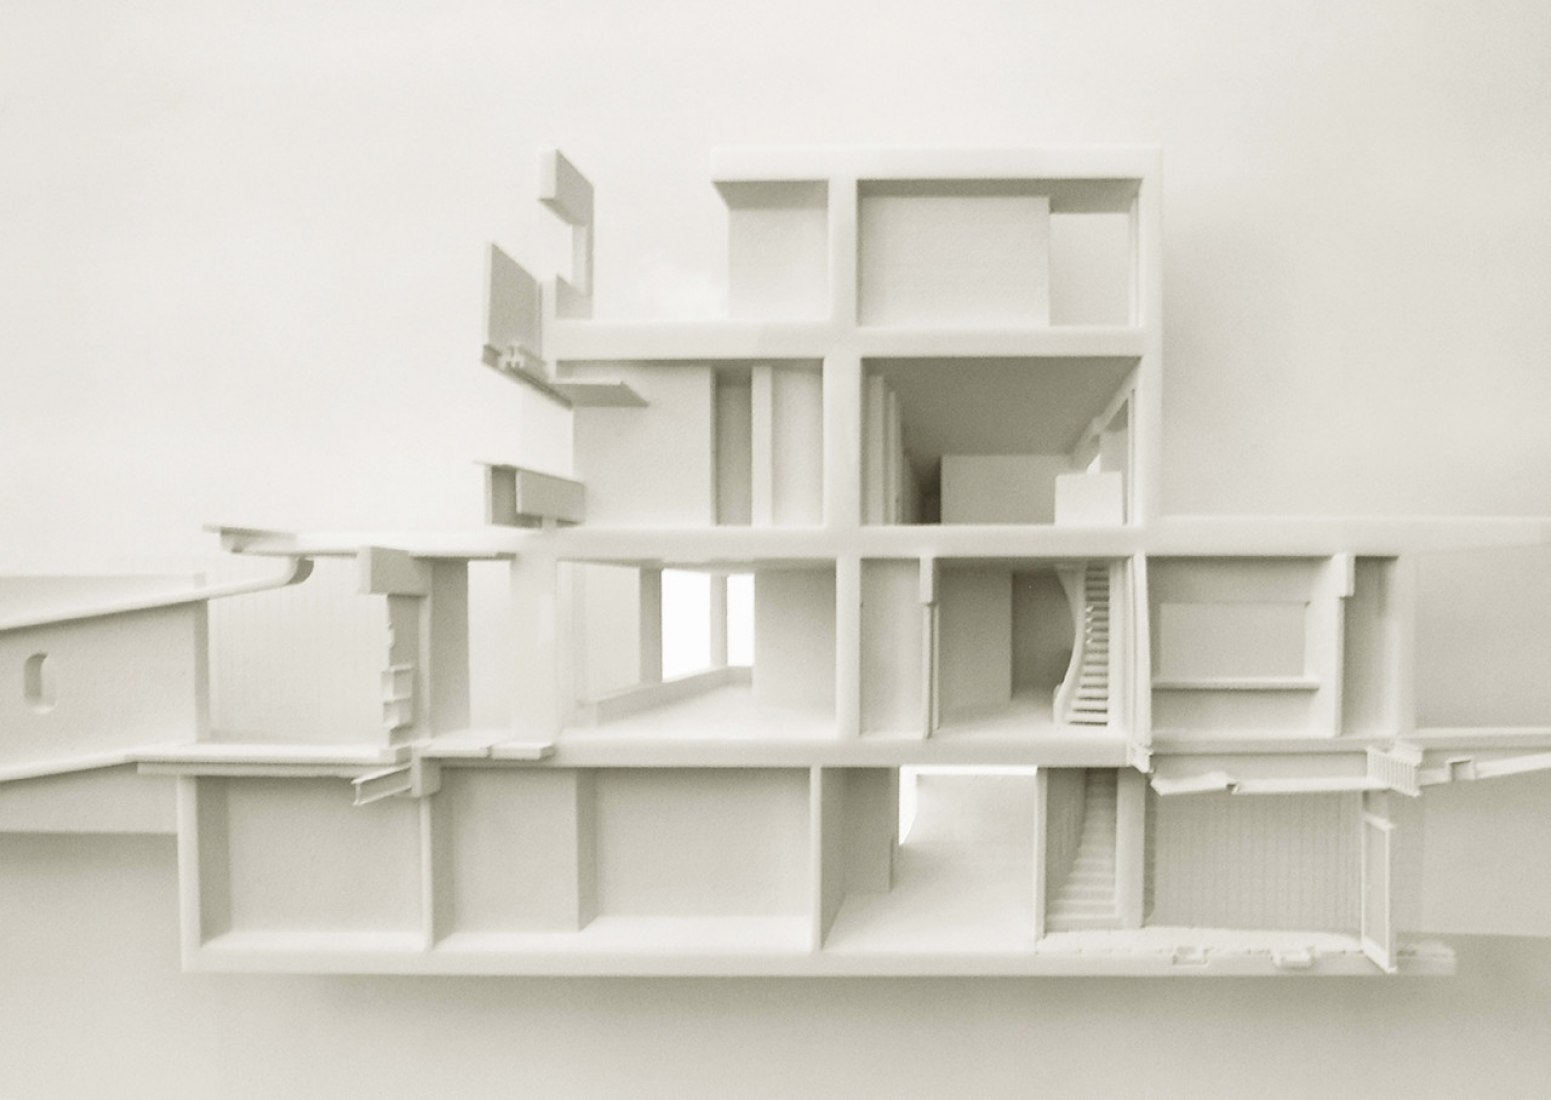 An analytical model of the Frank House by Walter Gropius and Marcel Breuer. Produced for the GSD option studio,